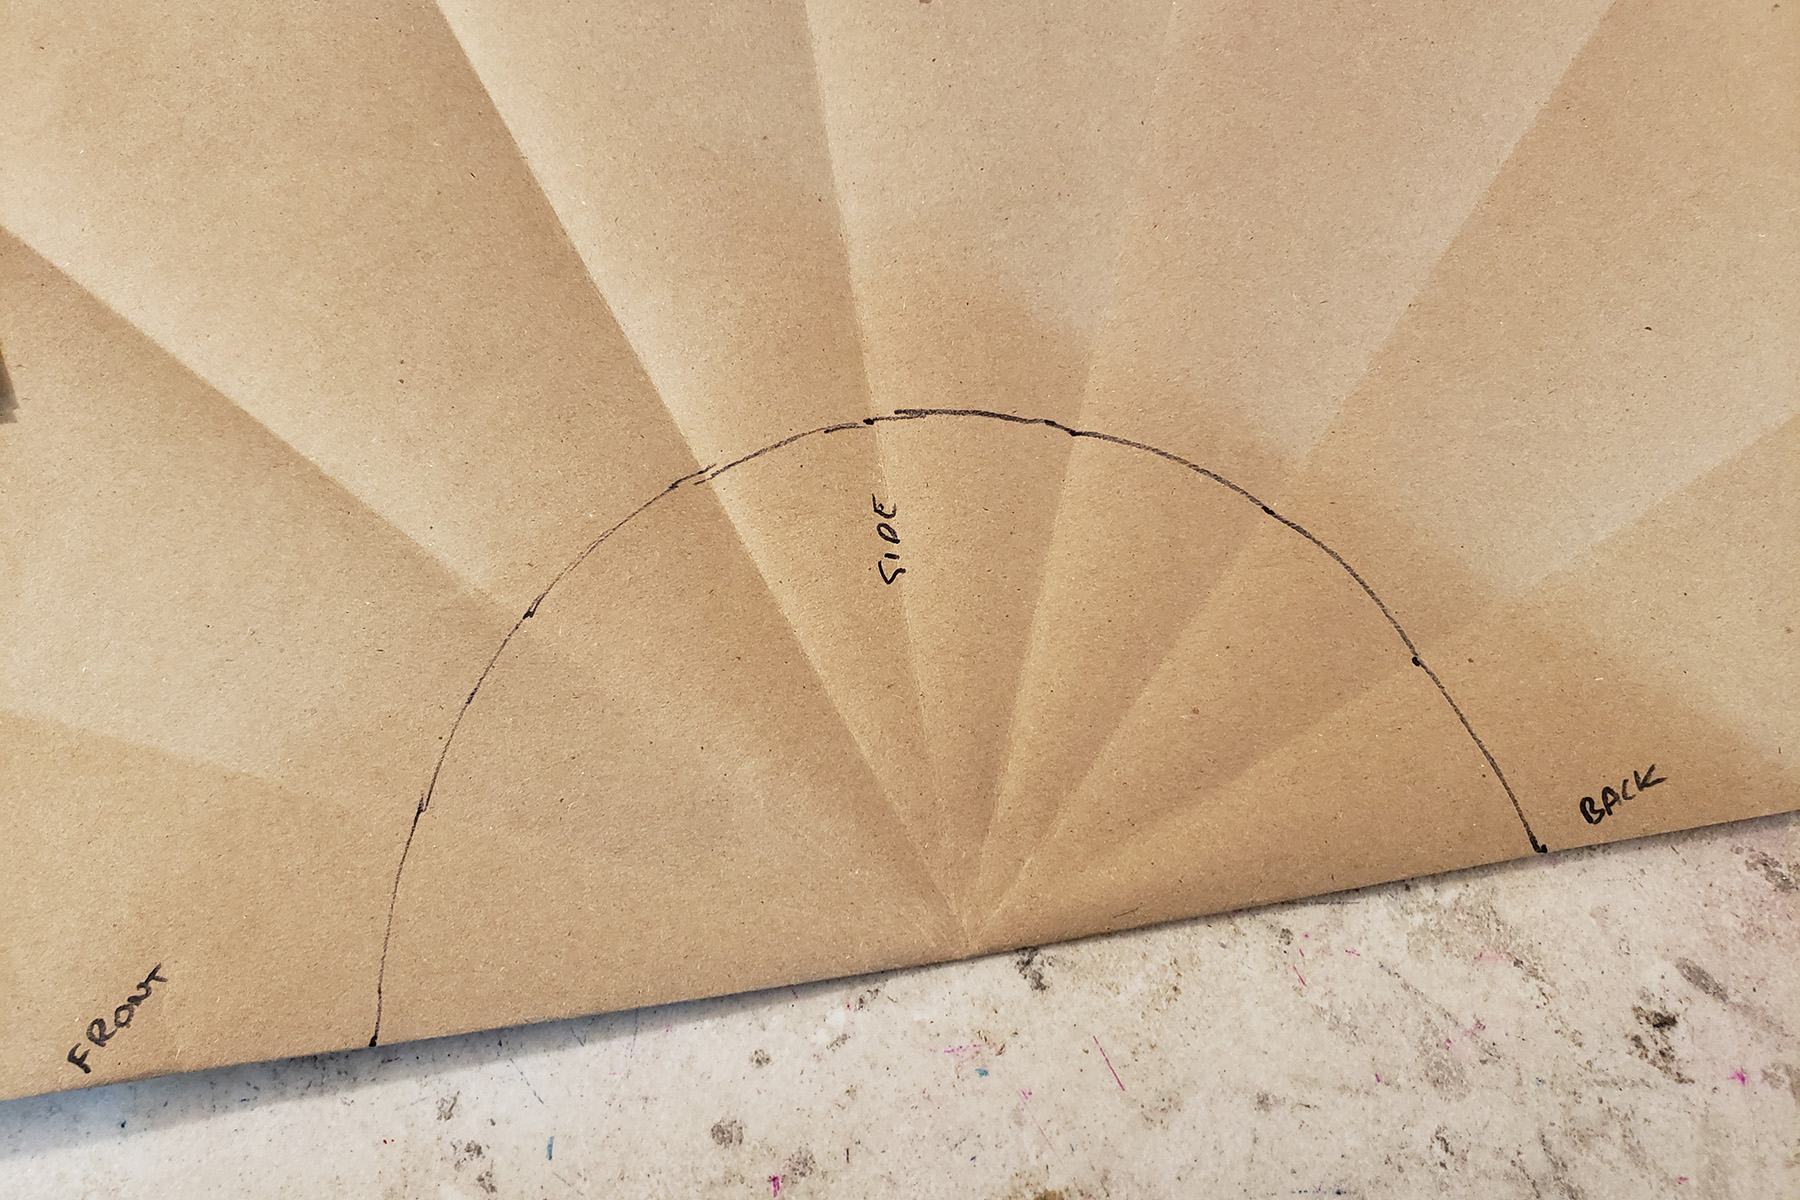 A large piece of brown craft paper with multiple folds radiating out from a central point.  A semi circle is drawn around the join point of the folds.